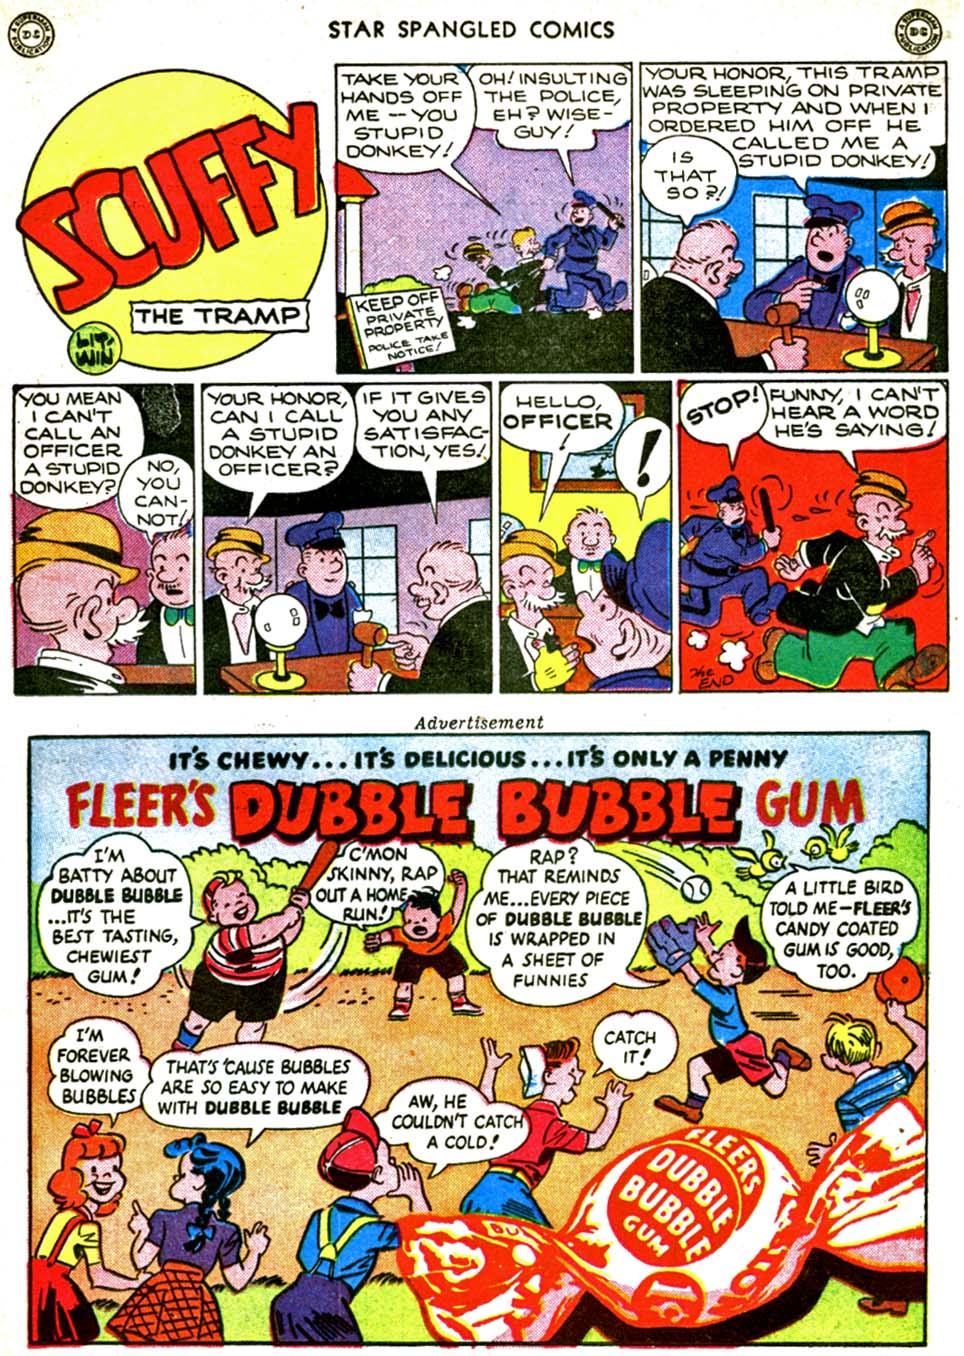 Star Spangled Comics (1941) issue 56 - Page 33